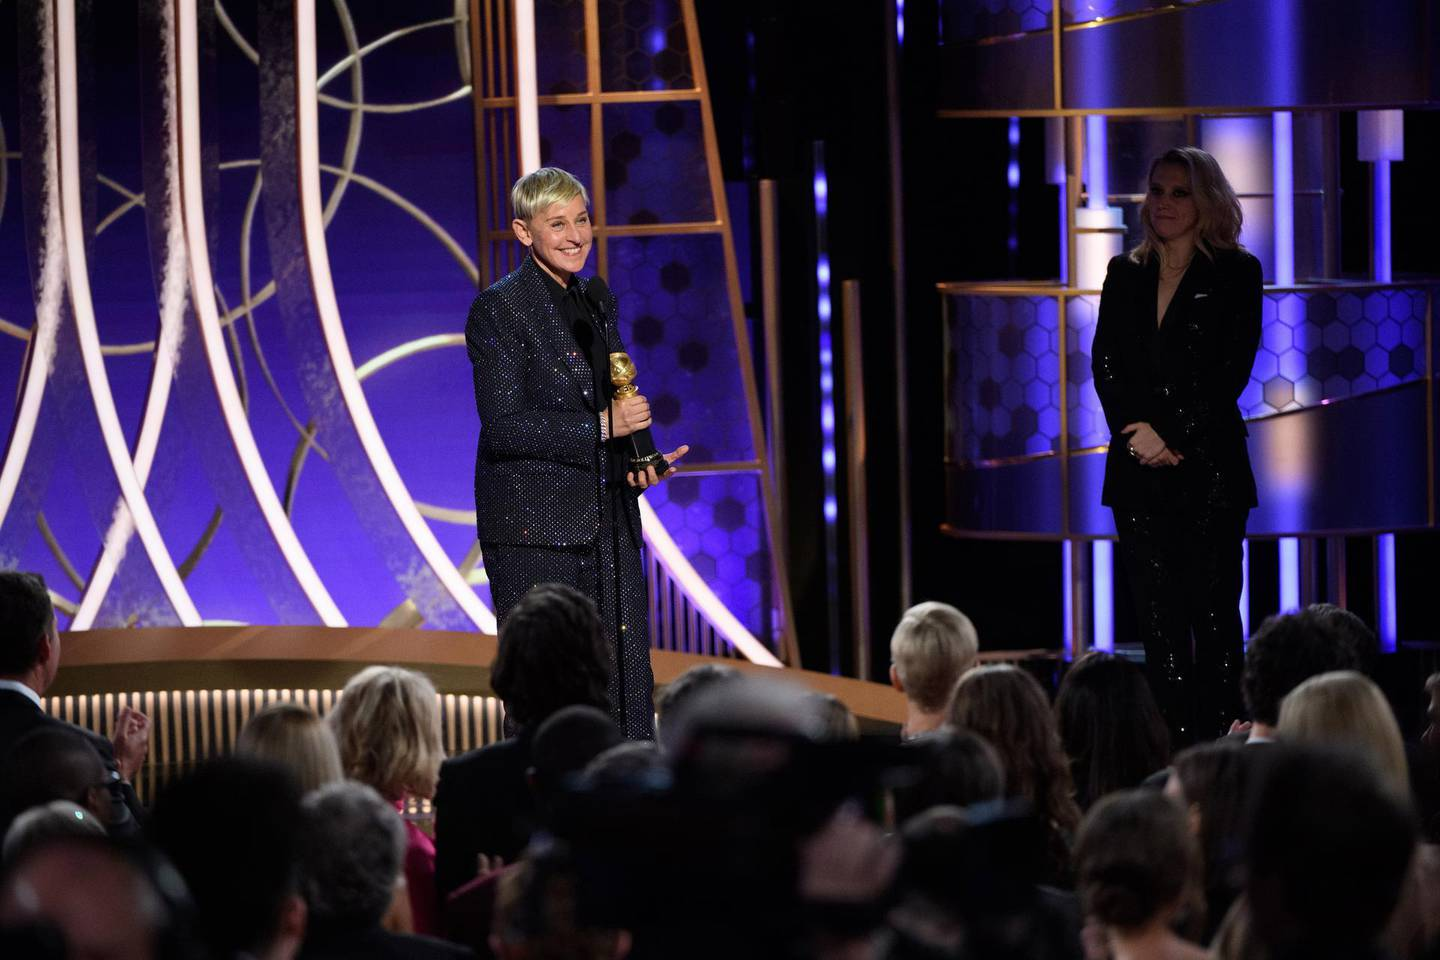 epa08106155 A handout photo made available by the Hollywood Foreign Press Association shows Ellen DeGeneres accepting the Carol Burnett Award for her outstanding contribution to television during the 77th annual Golden Globe Awards ceremony at the Beverly Hilton Hotel, in Beverly Hills, California, USA, 05 January 2020.  EPA/HFPA / HANDOUT ATTENTION EDITORS: IMAGE MAY ONLY BE USED UNALTERED, ONE TIME USE ONLY WITHIN 60 DAYS MANDATORY CREDIT HANDOUT EDITORIAL USE ONLY/NO SALES